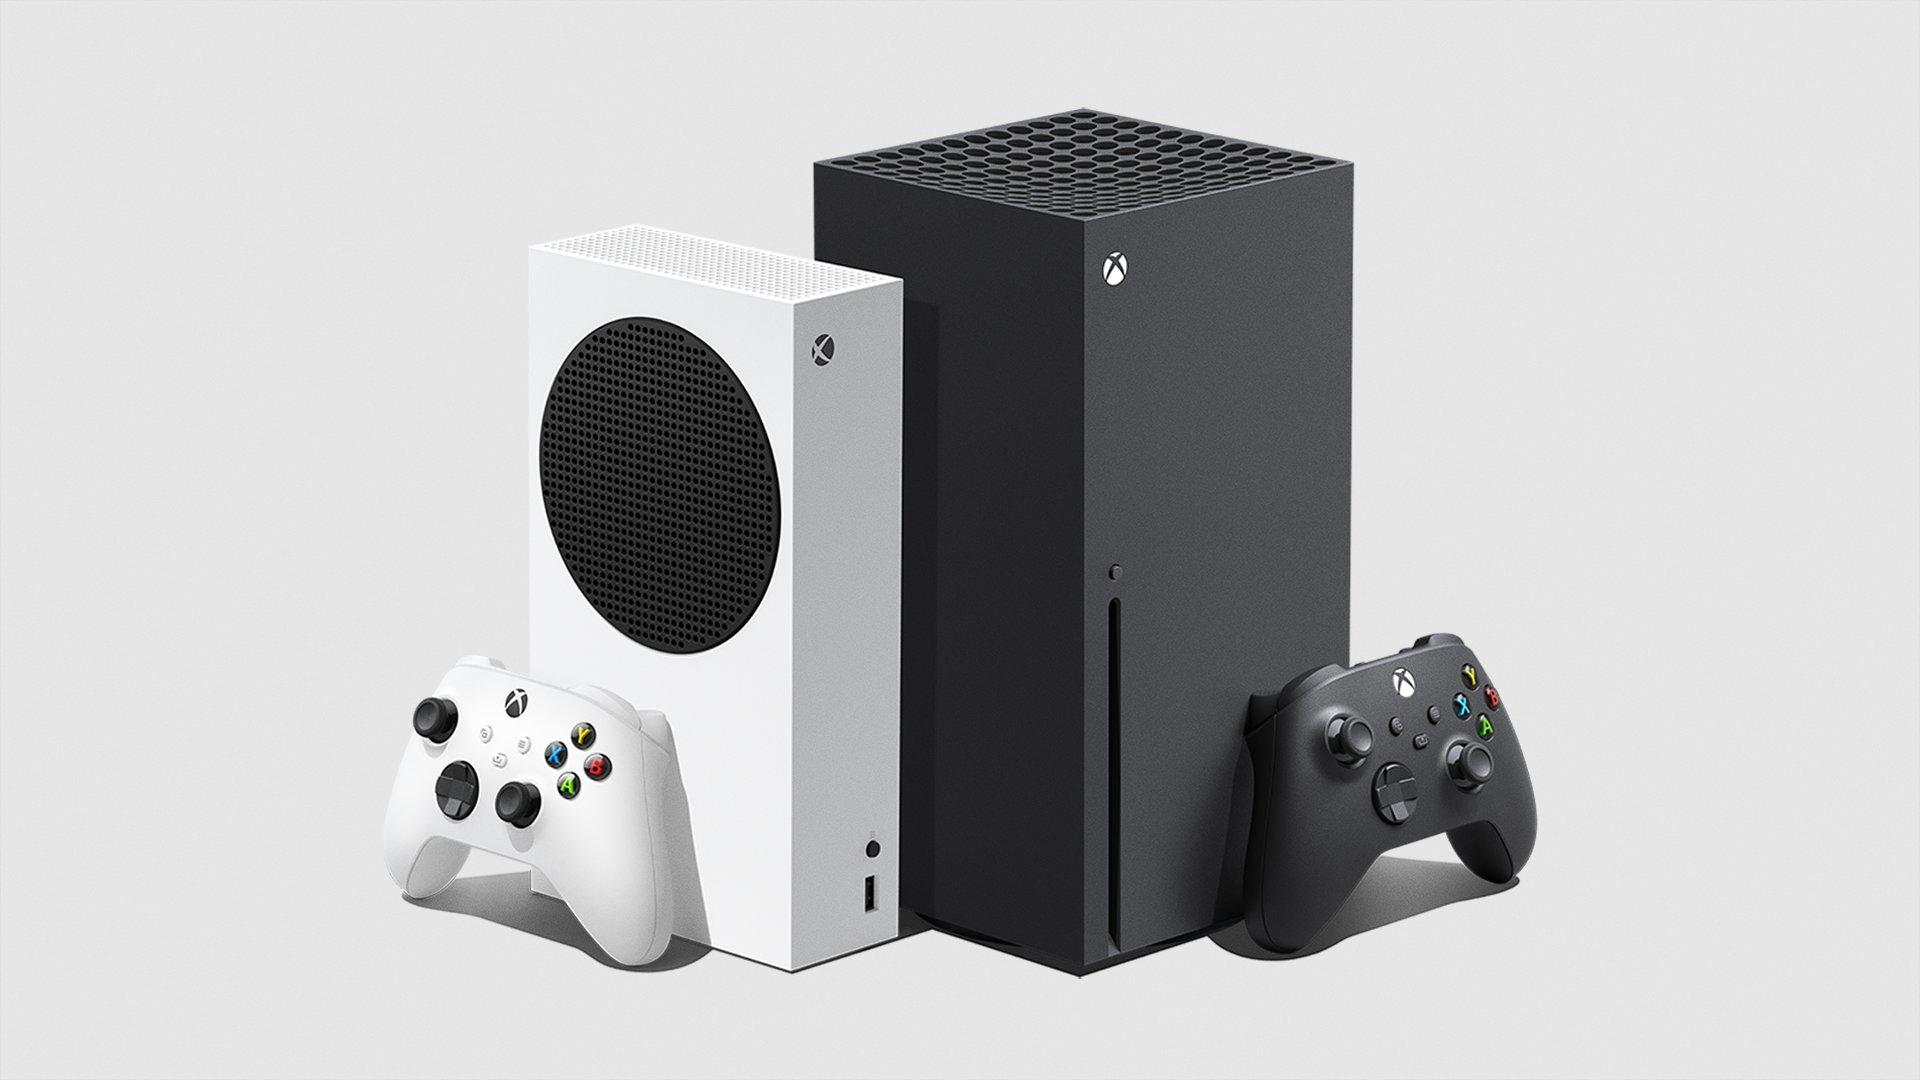 Xbox Series X and Series S to release Nov. 10